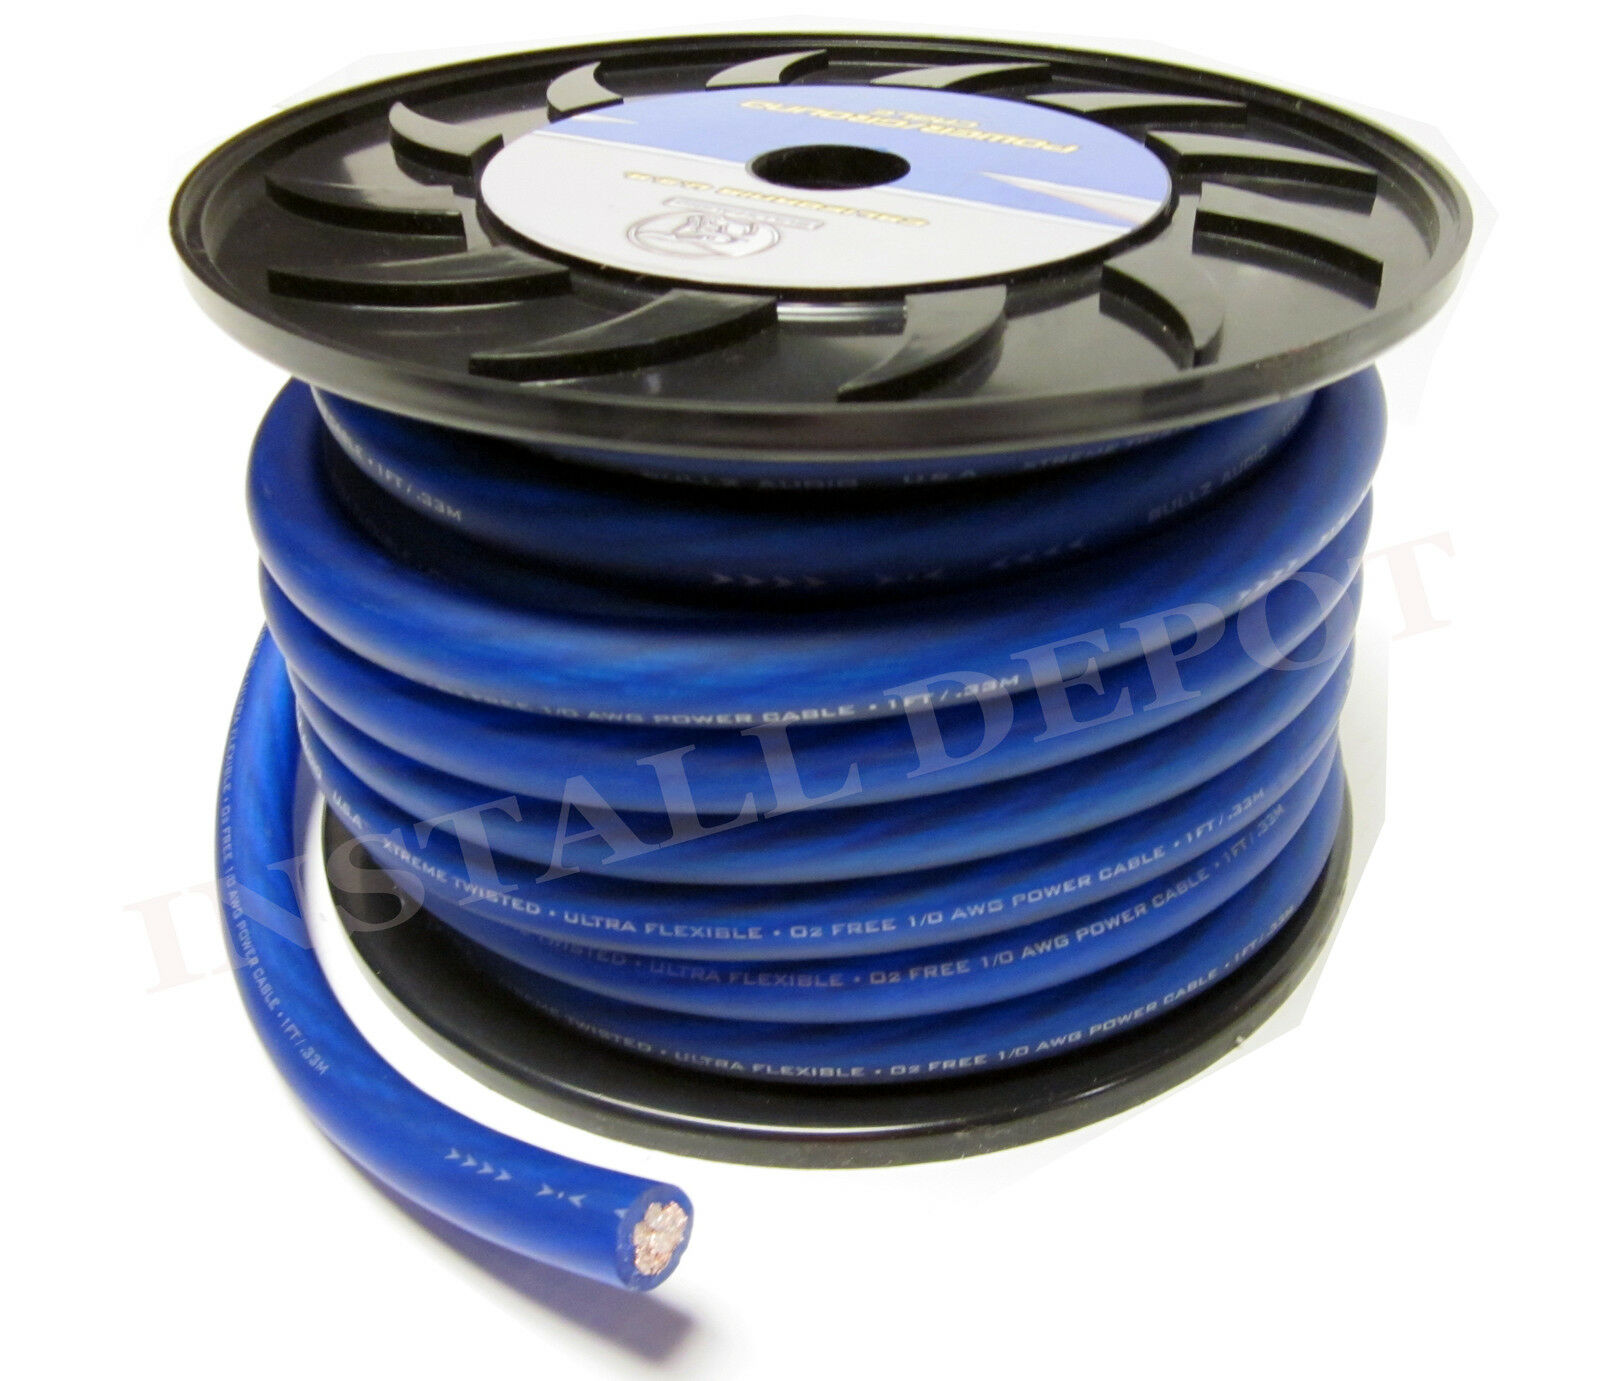 25 Ft - Premium 0 Gauge Blue Power Wire Ground Cable 1/0 Awg Car 1 of 1FREE  Shipping See More